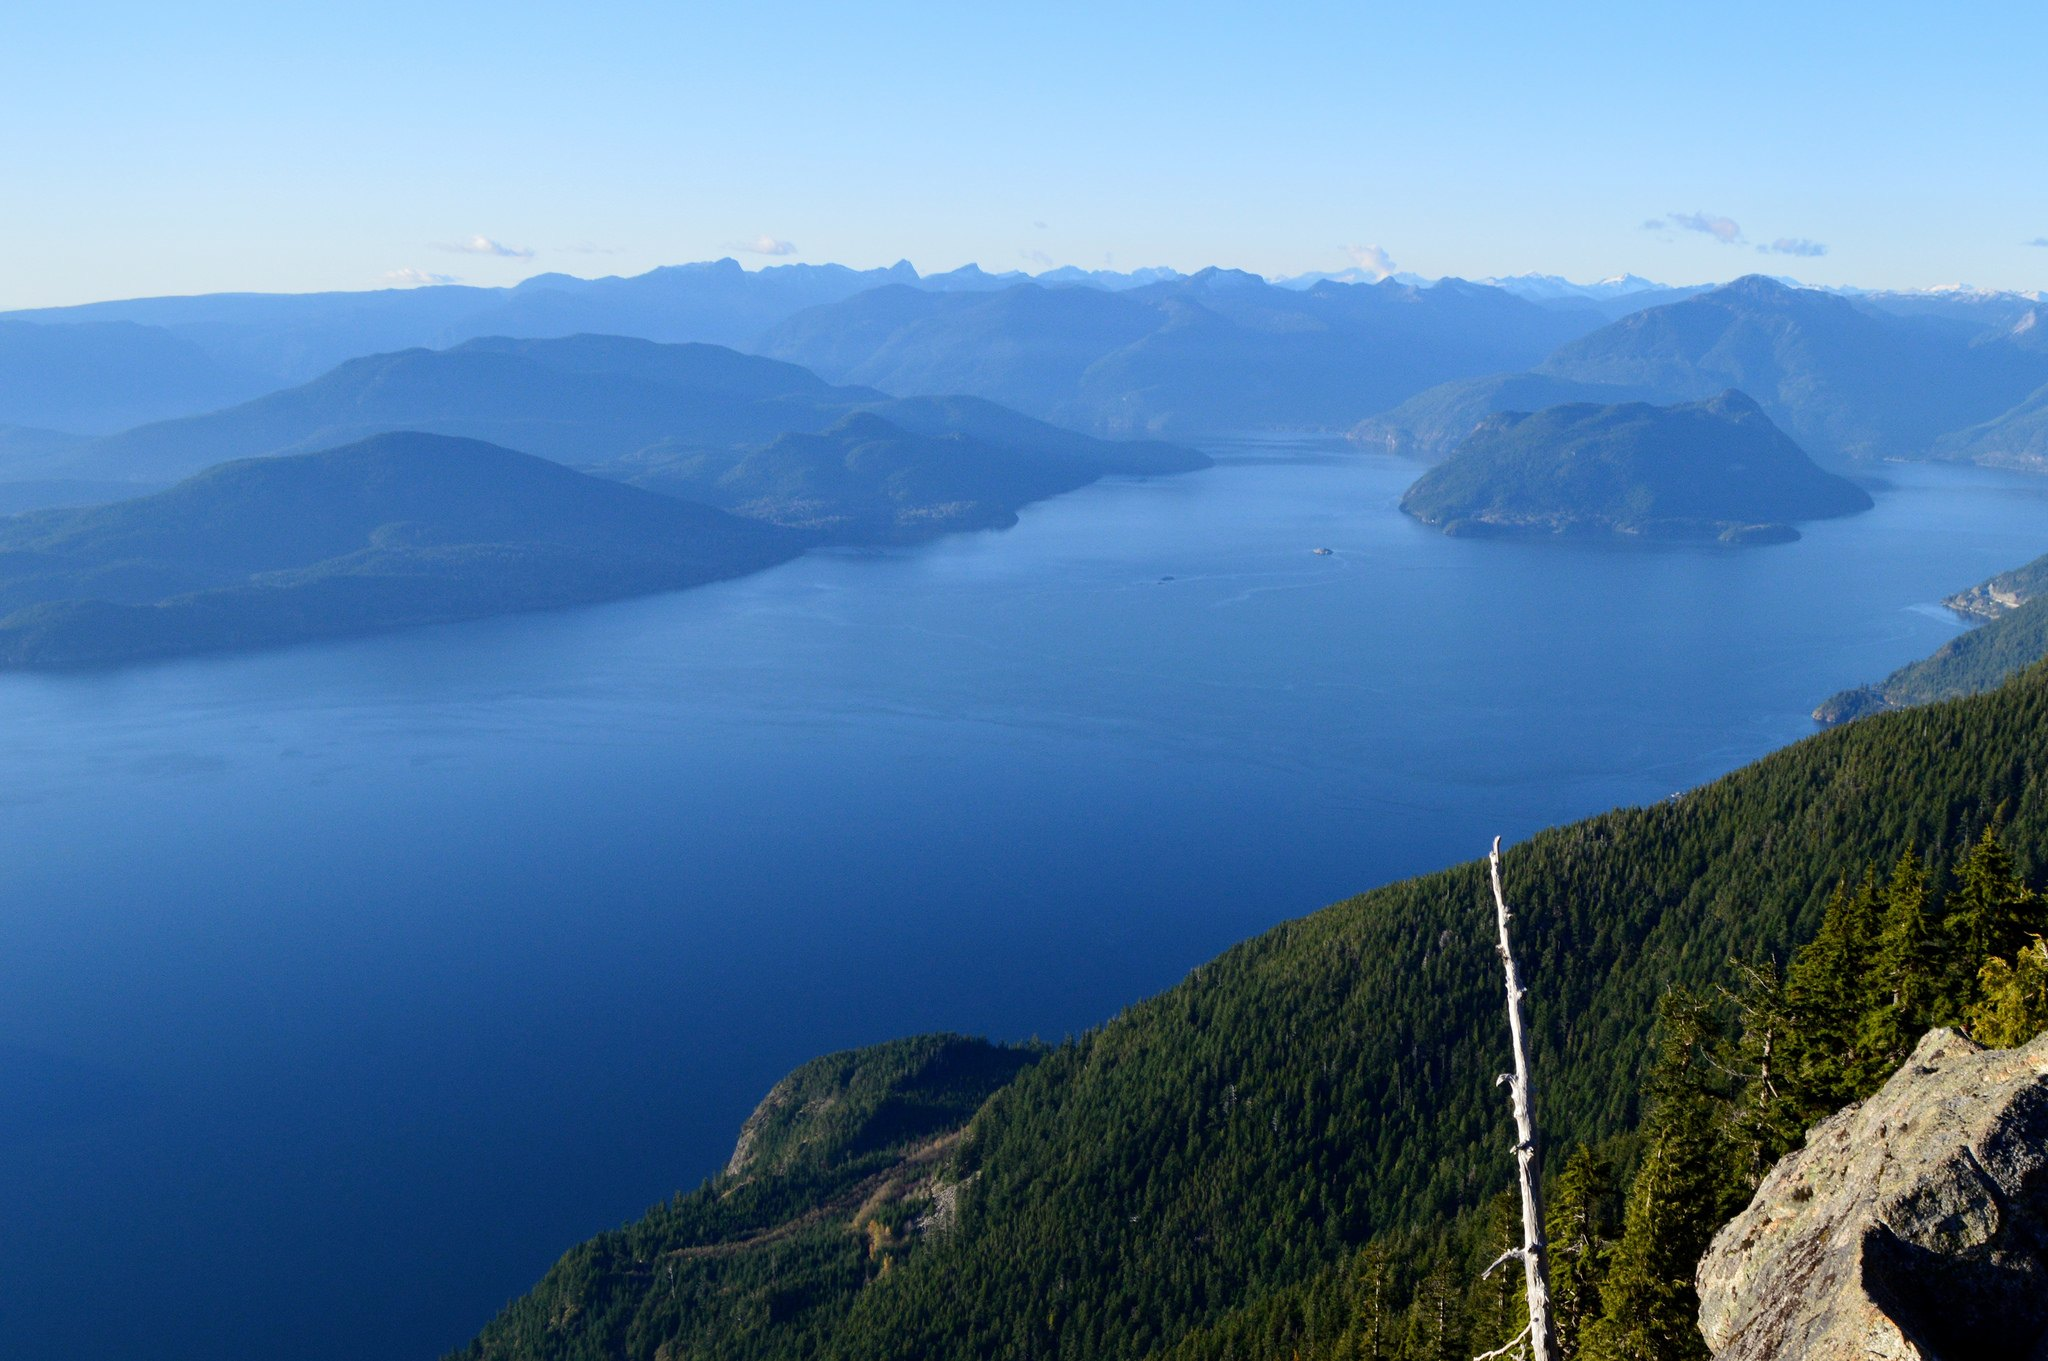 The view from St Mark's Summit on the Howe Sound Crest Trail in North Vancouver (Harold Cecchetti/Flickr)